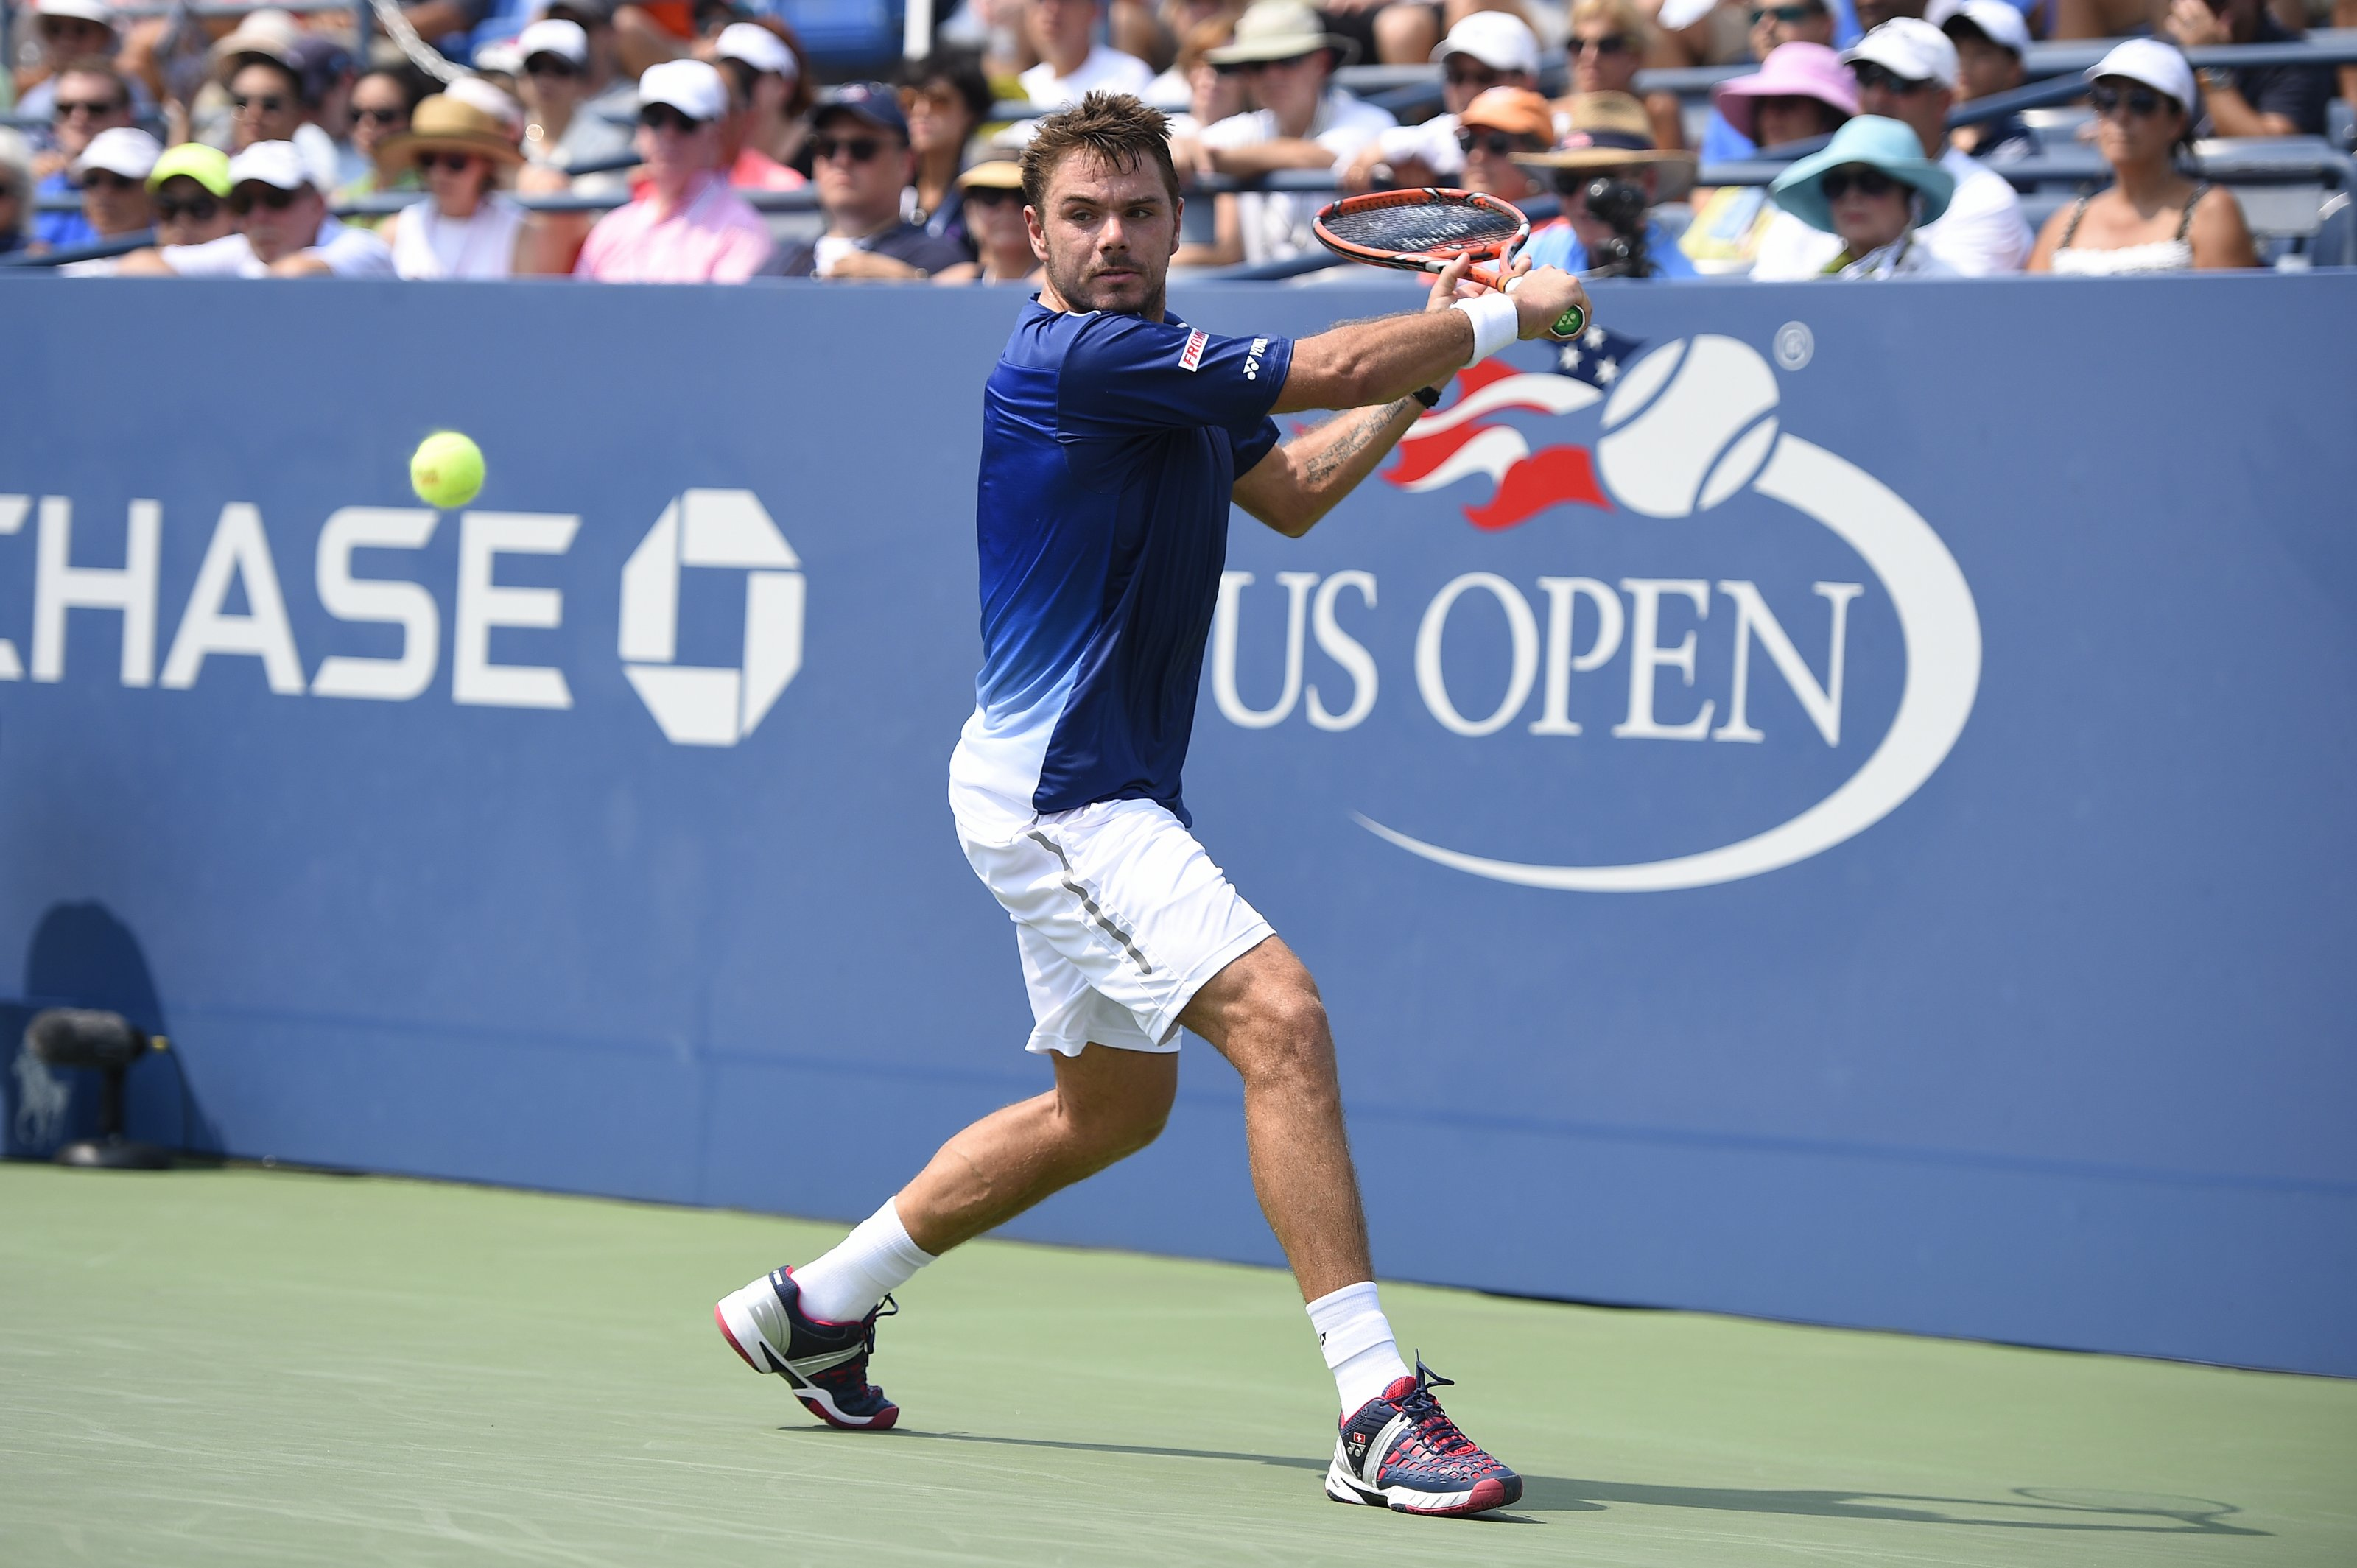 Stan Wawrinka of Switzerland plays his second round match at the US Open at the USTA Billie Jean King National Tennis Center in the Flushing neighborhood of the Queens borough of New York City, NY, USA on September 3, 2015. Photo by Corinne Dubreuil/ABACAPRESS.COM